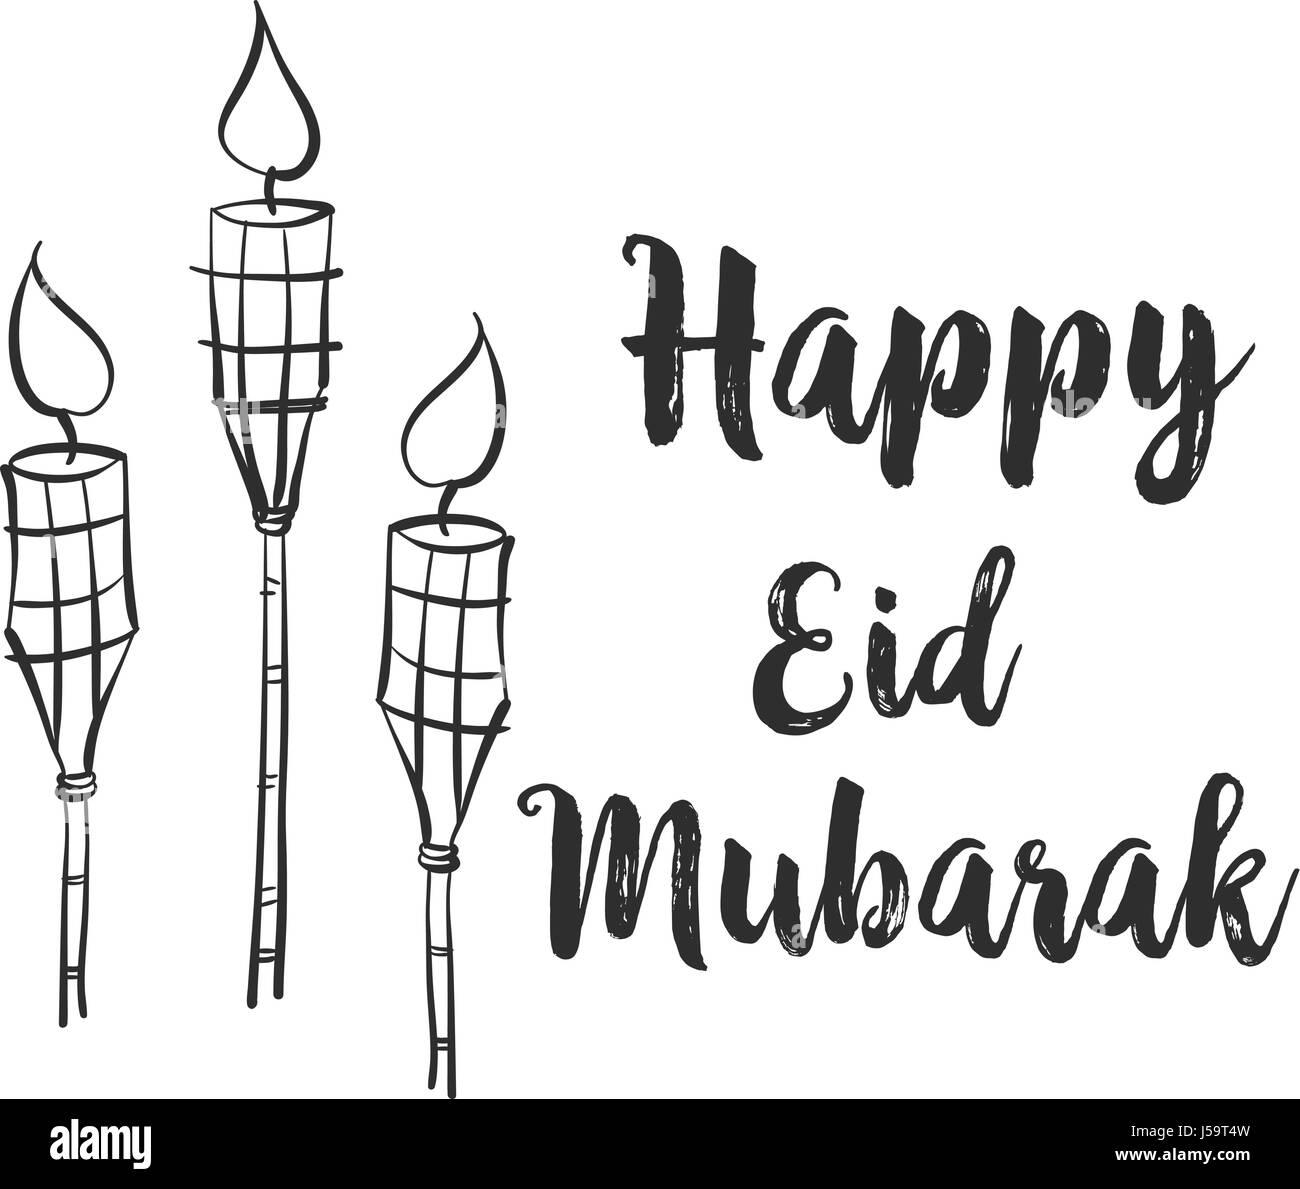 Eid Mubarak Black and White Stock Photos & Images - Alamy